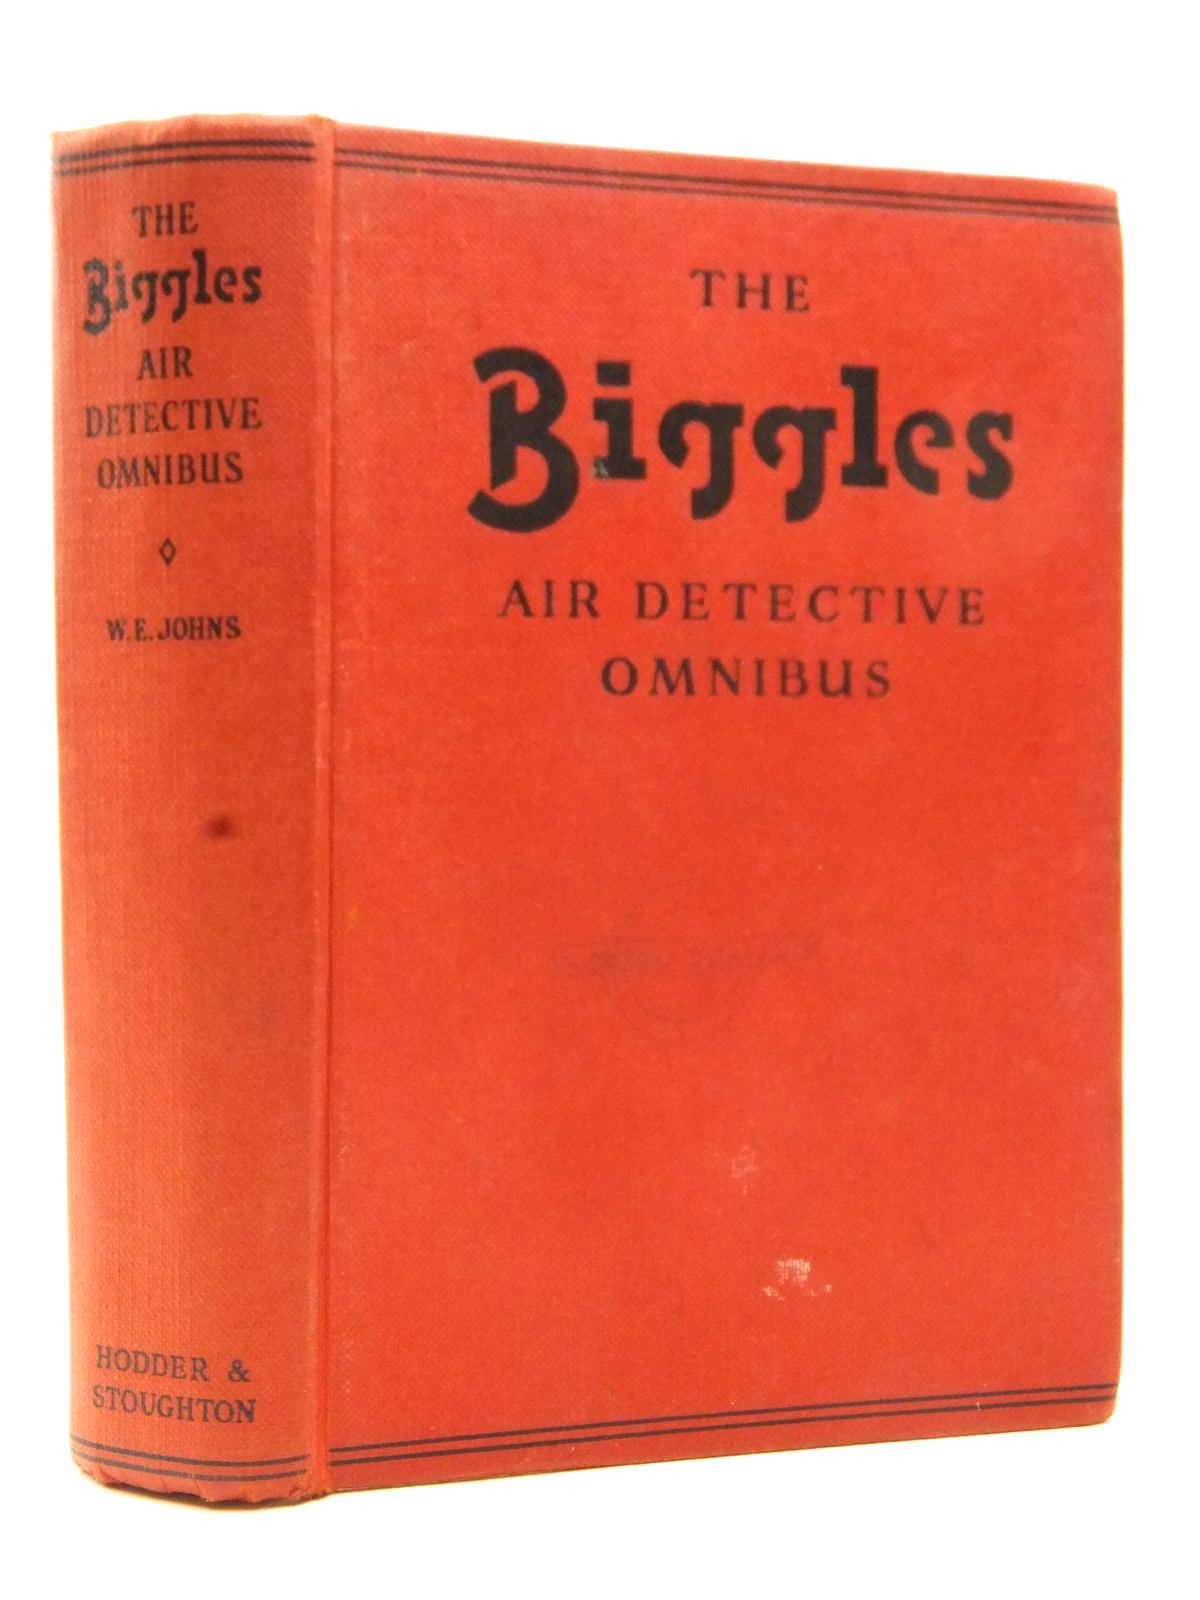 Photo of THE BIGGLES AIR DETECTIVE OMNIBUS written by Johns, W.E. published by Hodder & Stoughton (STOCK CODE: 2123036)  for sale by Stella & Rose's Books